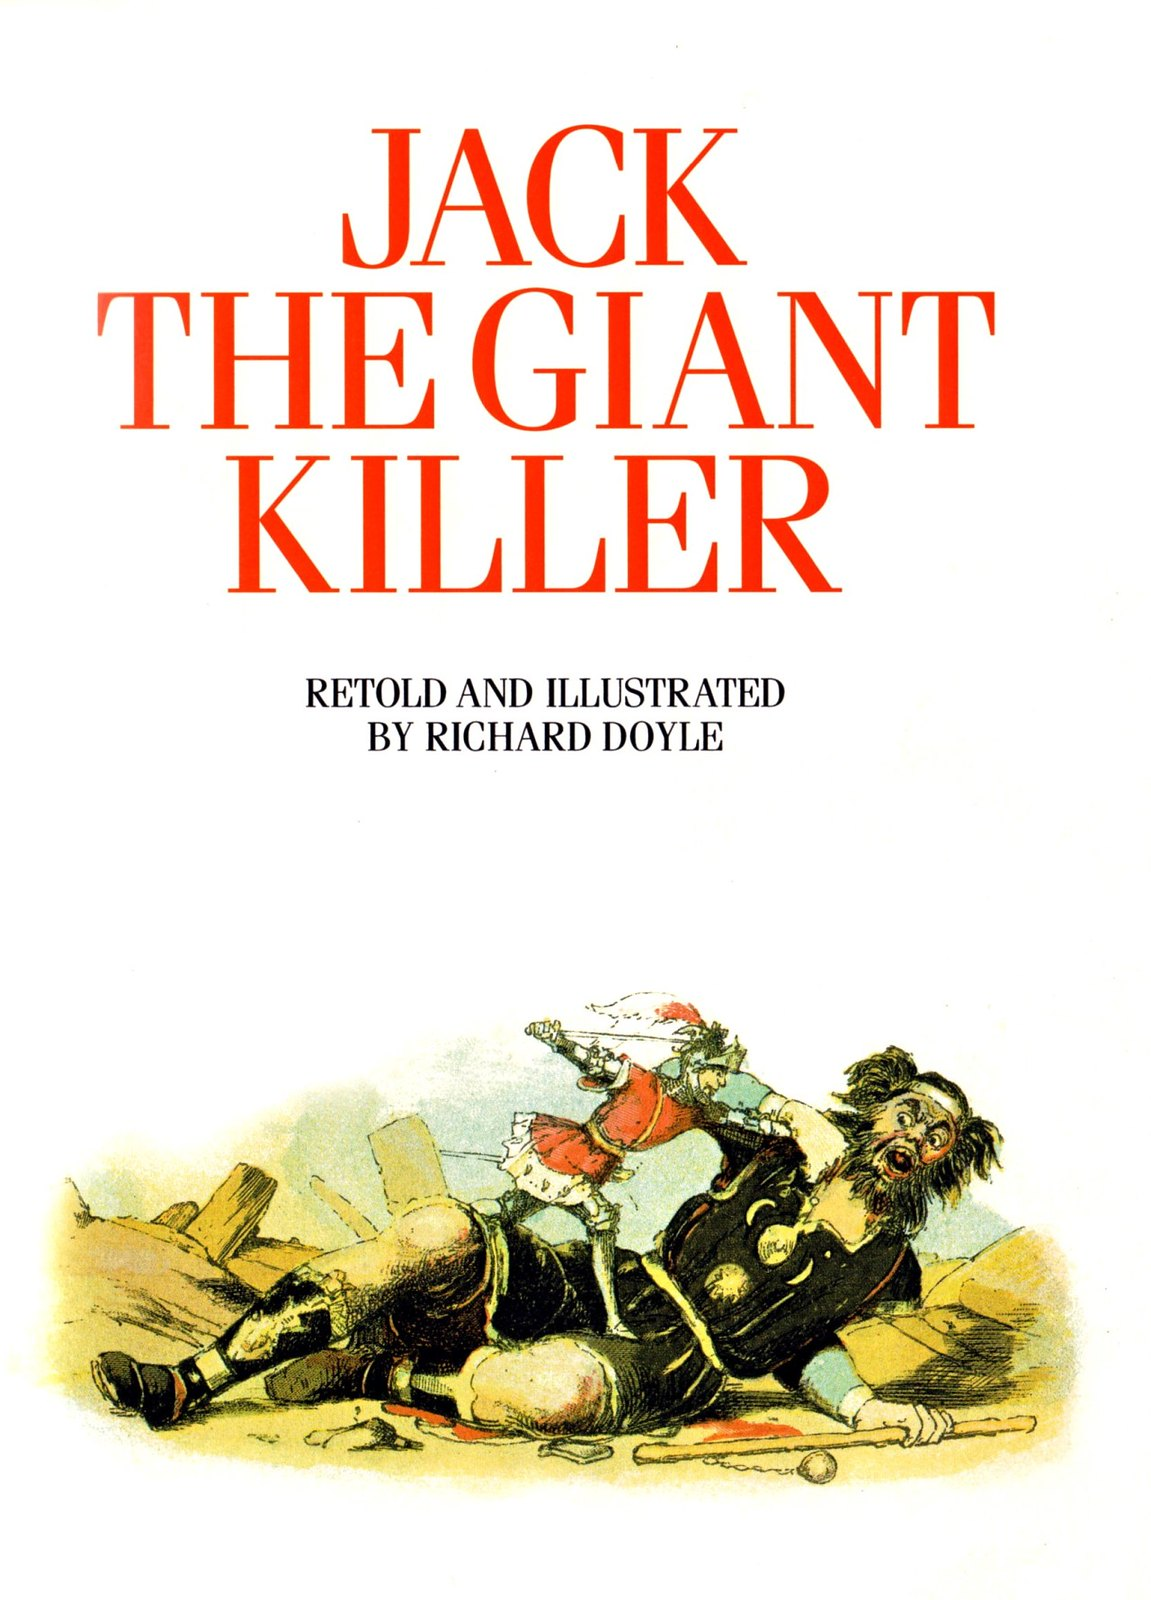 Richard Doyle - Jack the Giant Killer, 1842, 01